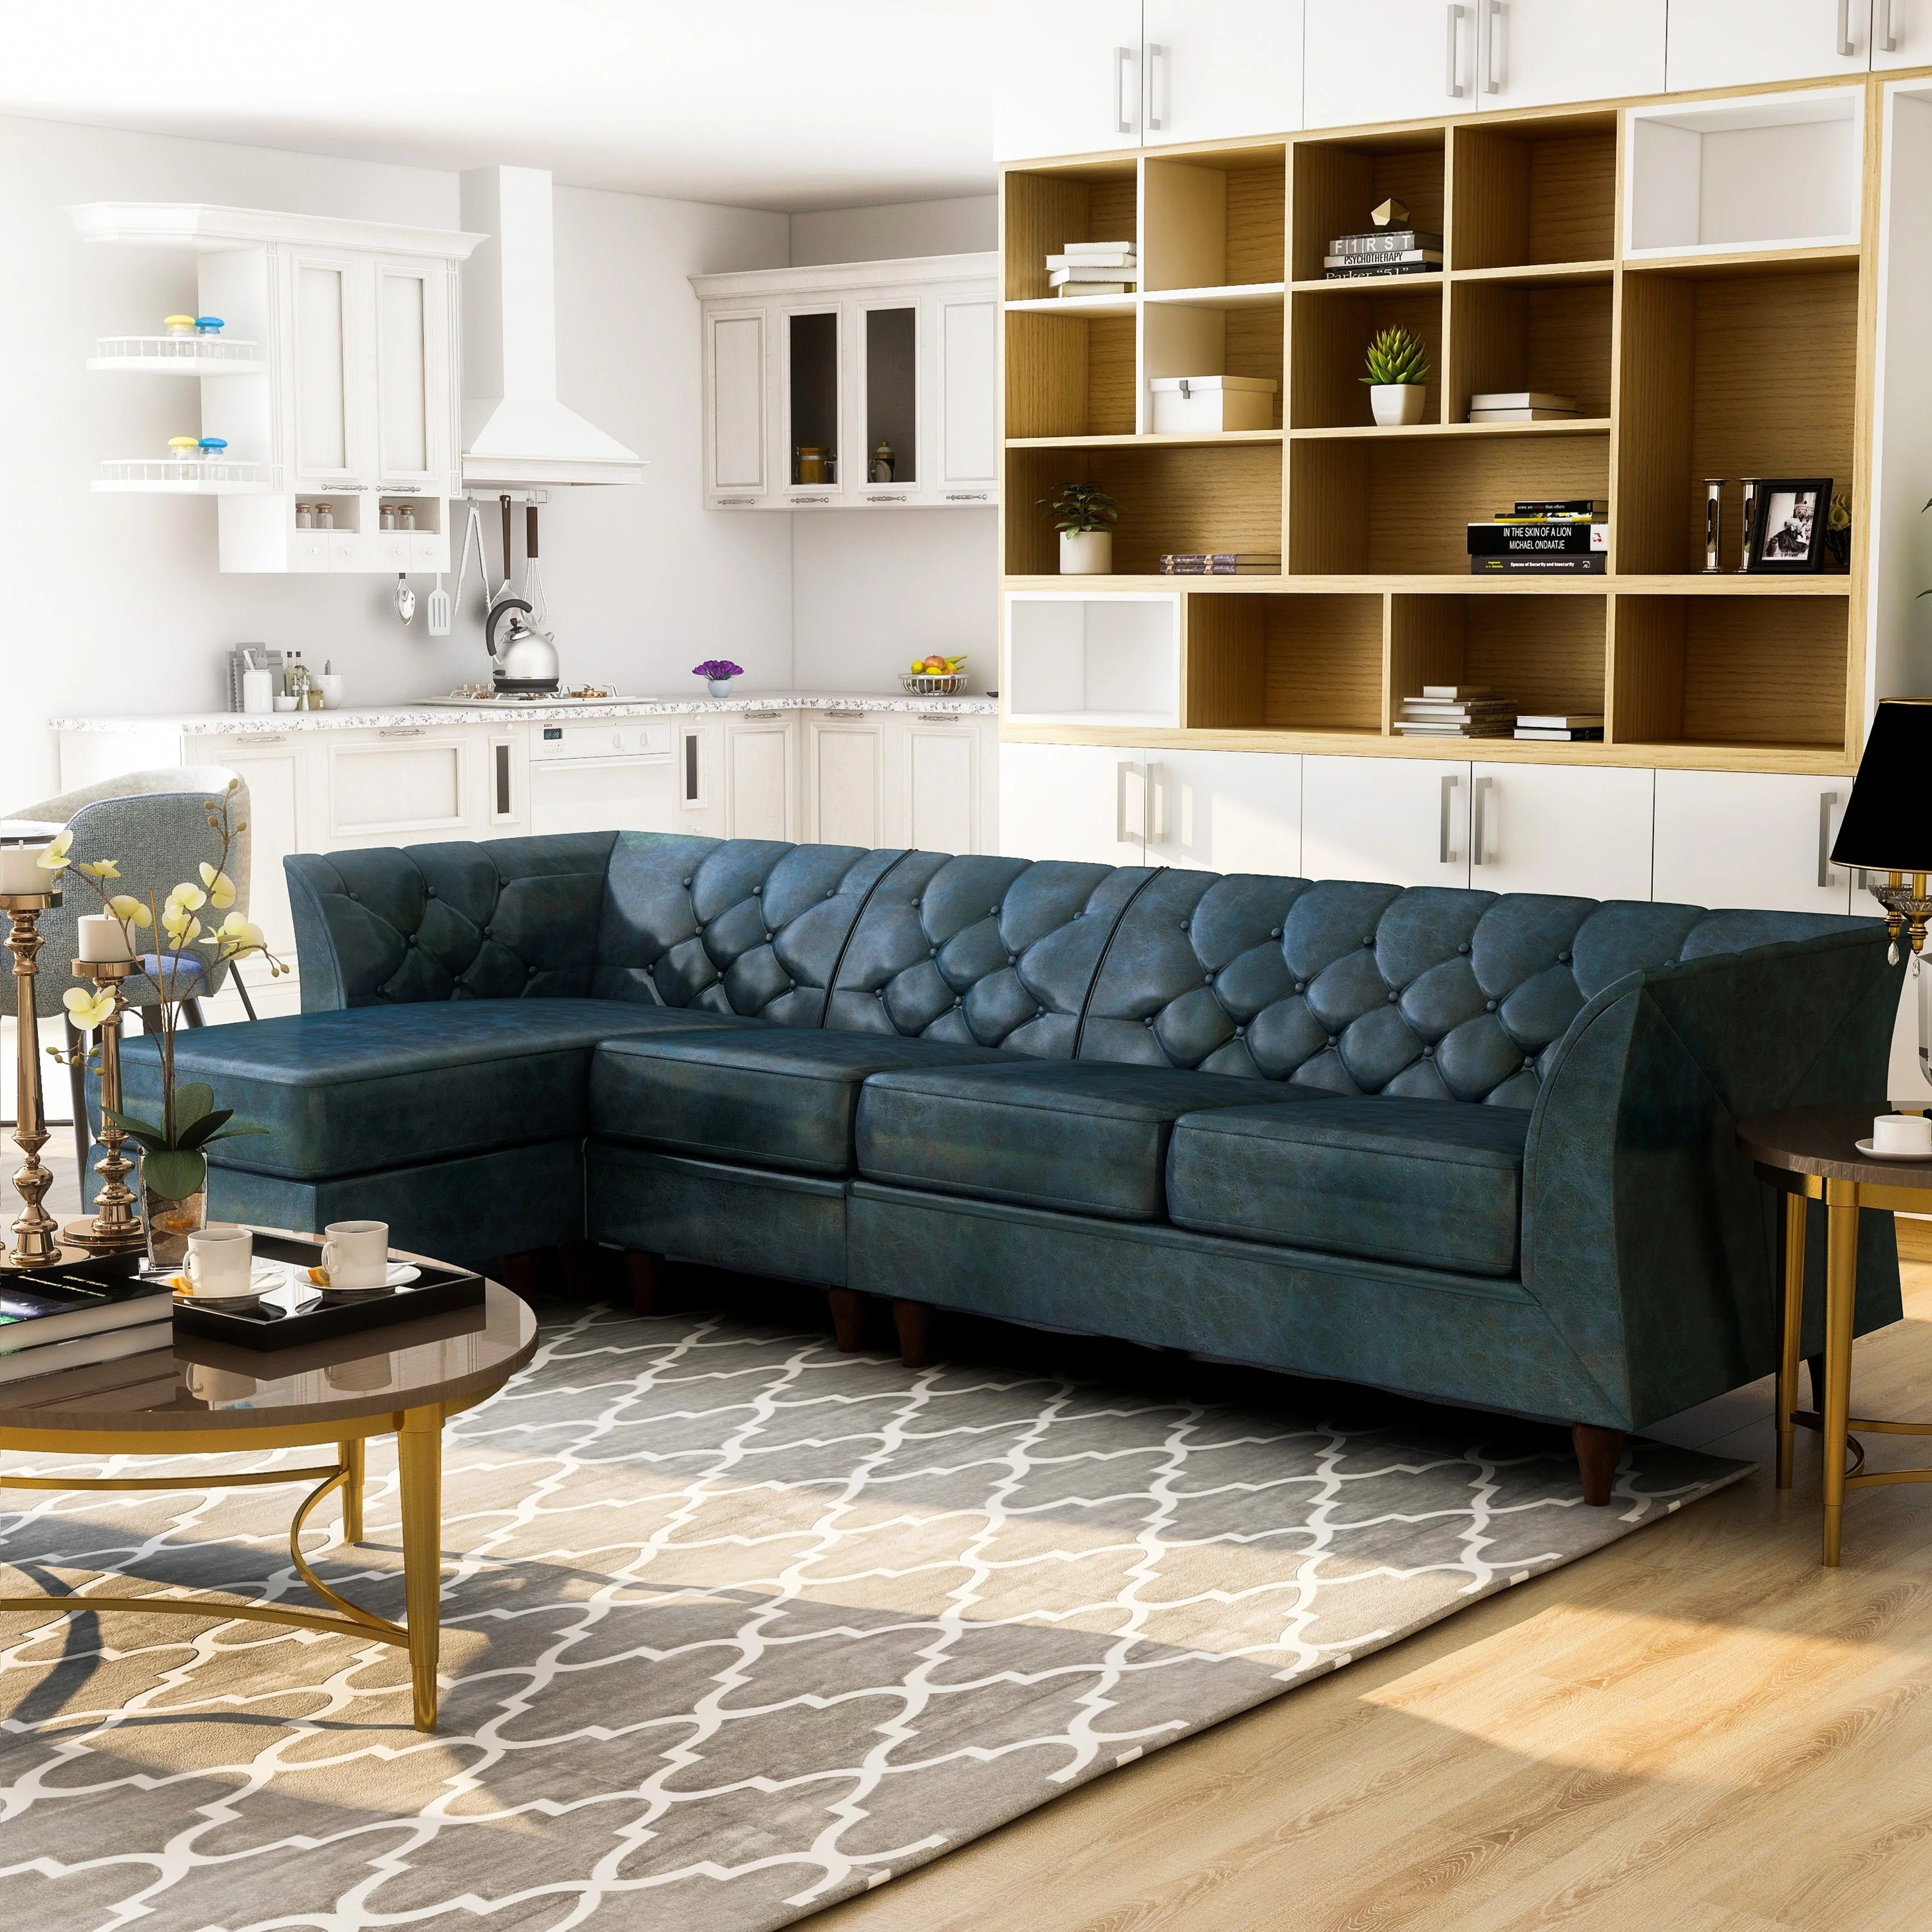 Furniture Of America Kestrel Modern Modular Chesterfield Sectional On Sale Overstock 30272463